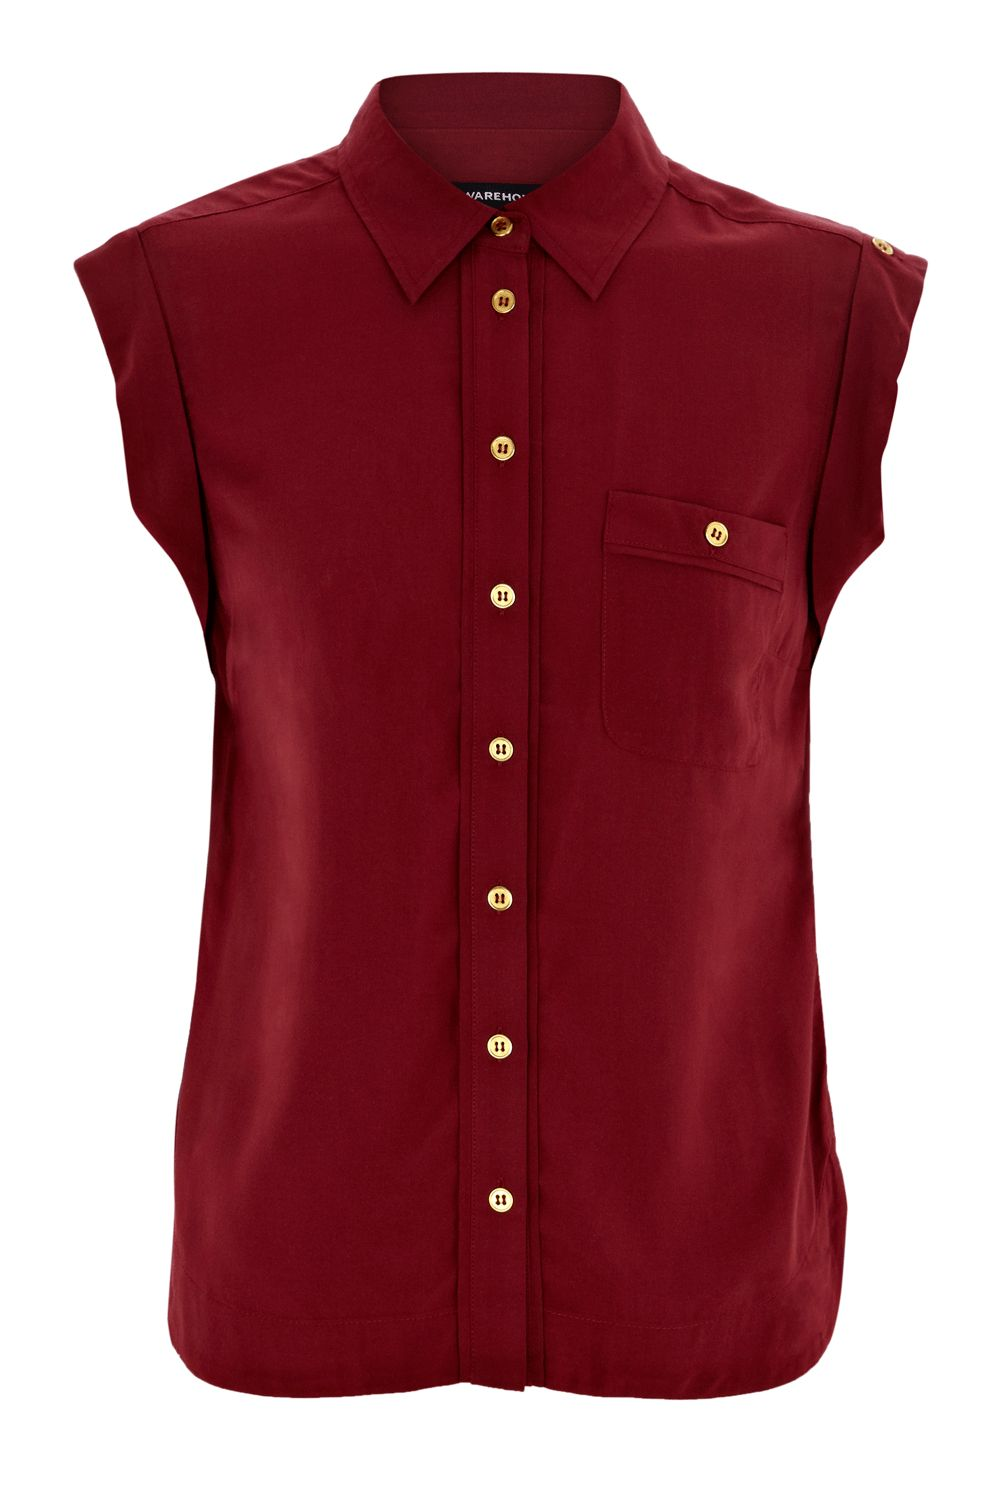 Warehouse Womens Warehouse Roll-sleeve blouse, Red product image